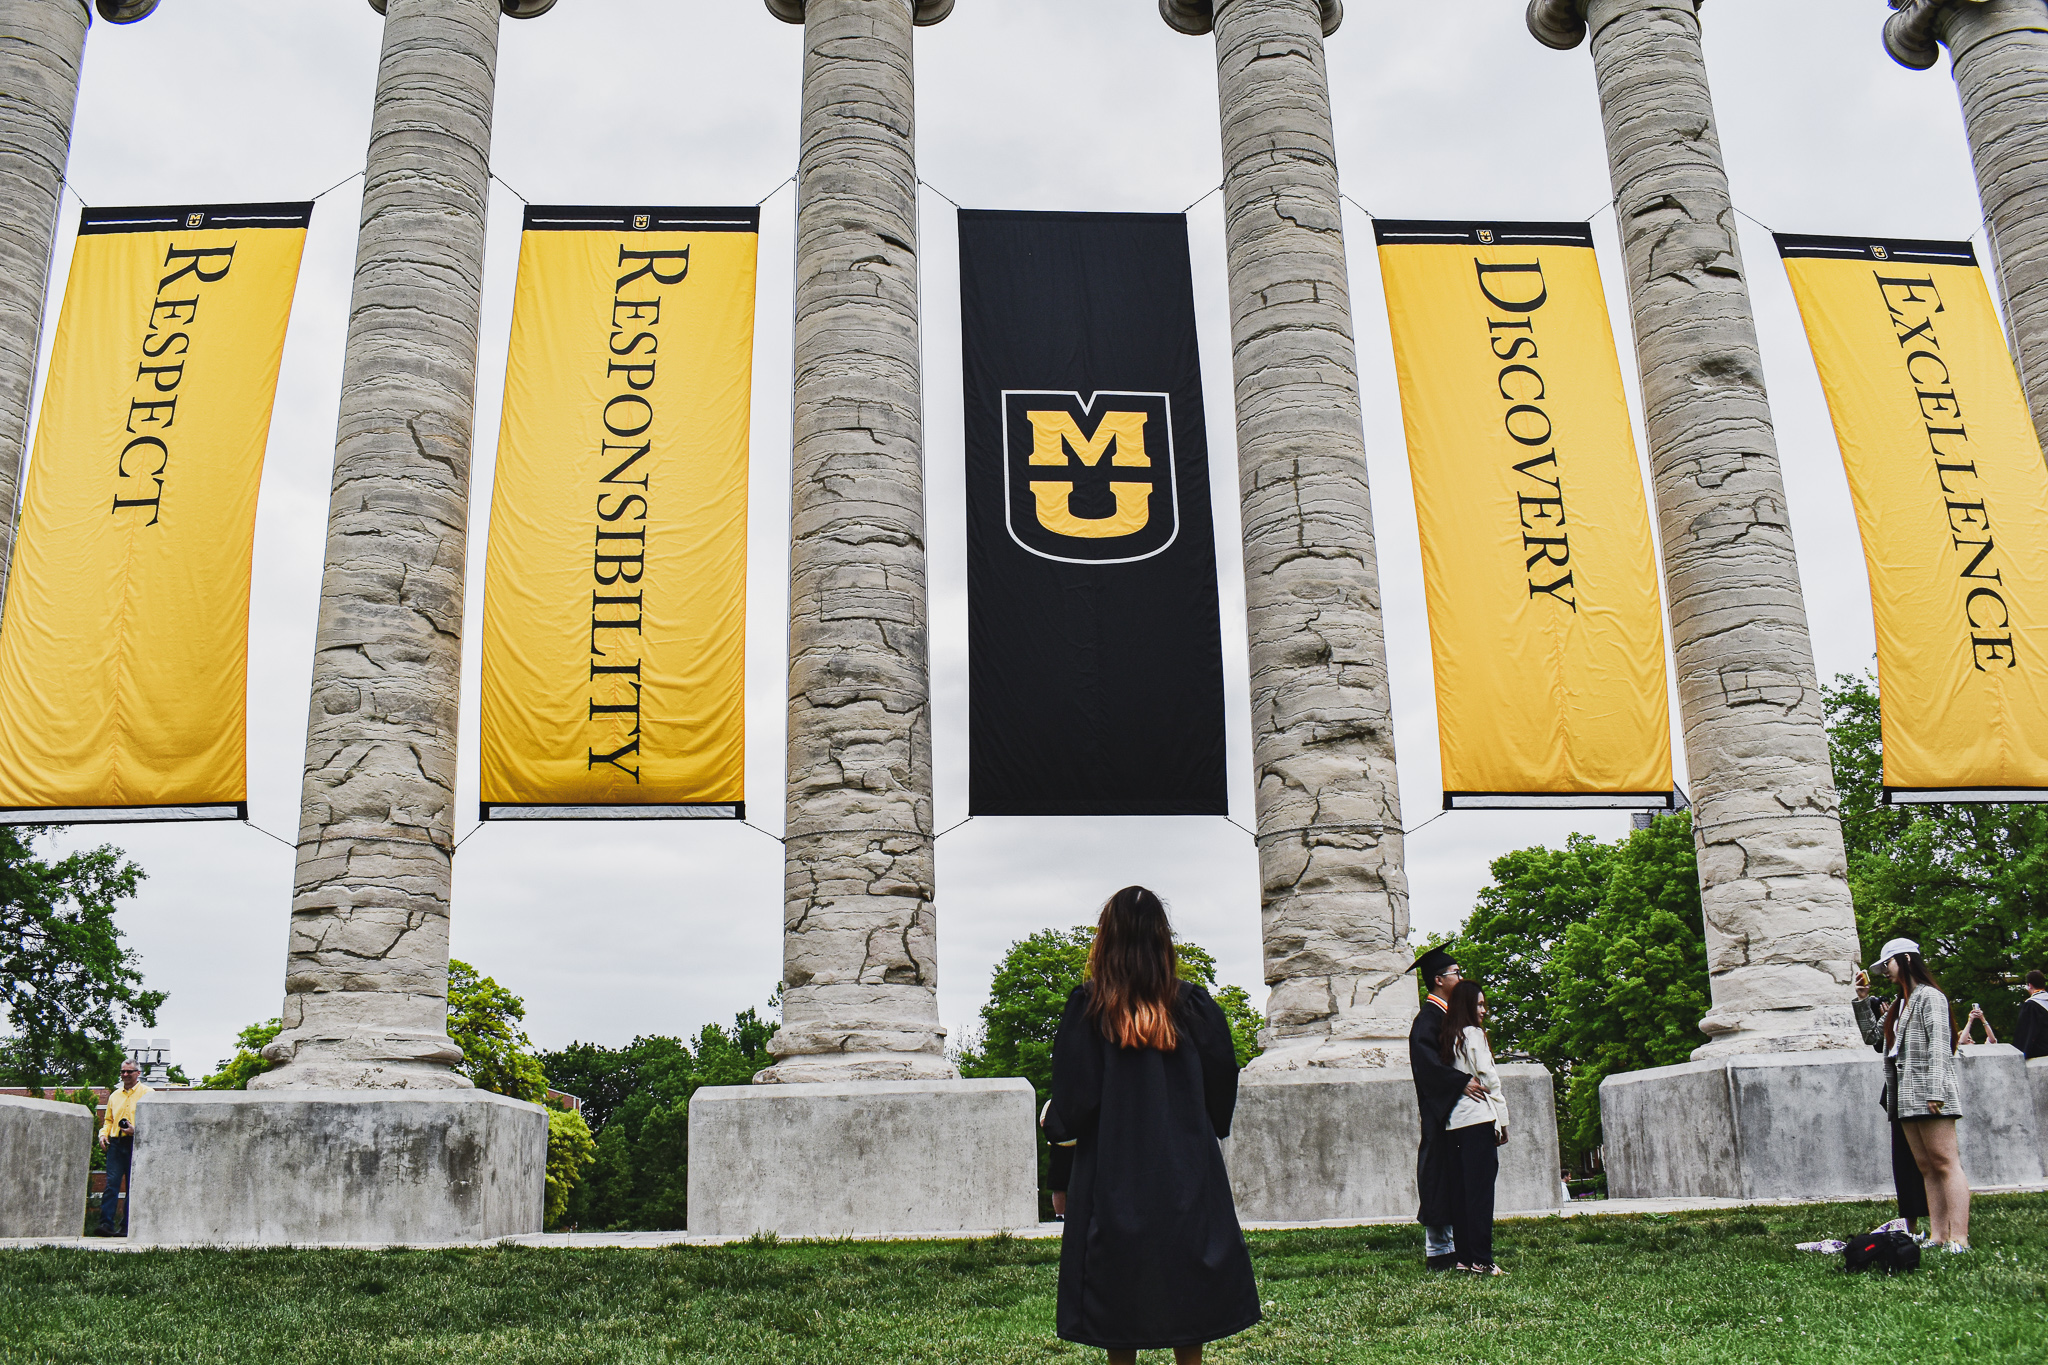 My newly-graduated sister admiring the iconic columns of the University of Missouri, my alma mater where I graduated Magna Cum Laude with degrees in International Business, Management, and Spanish.